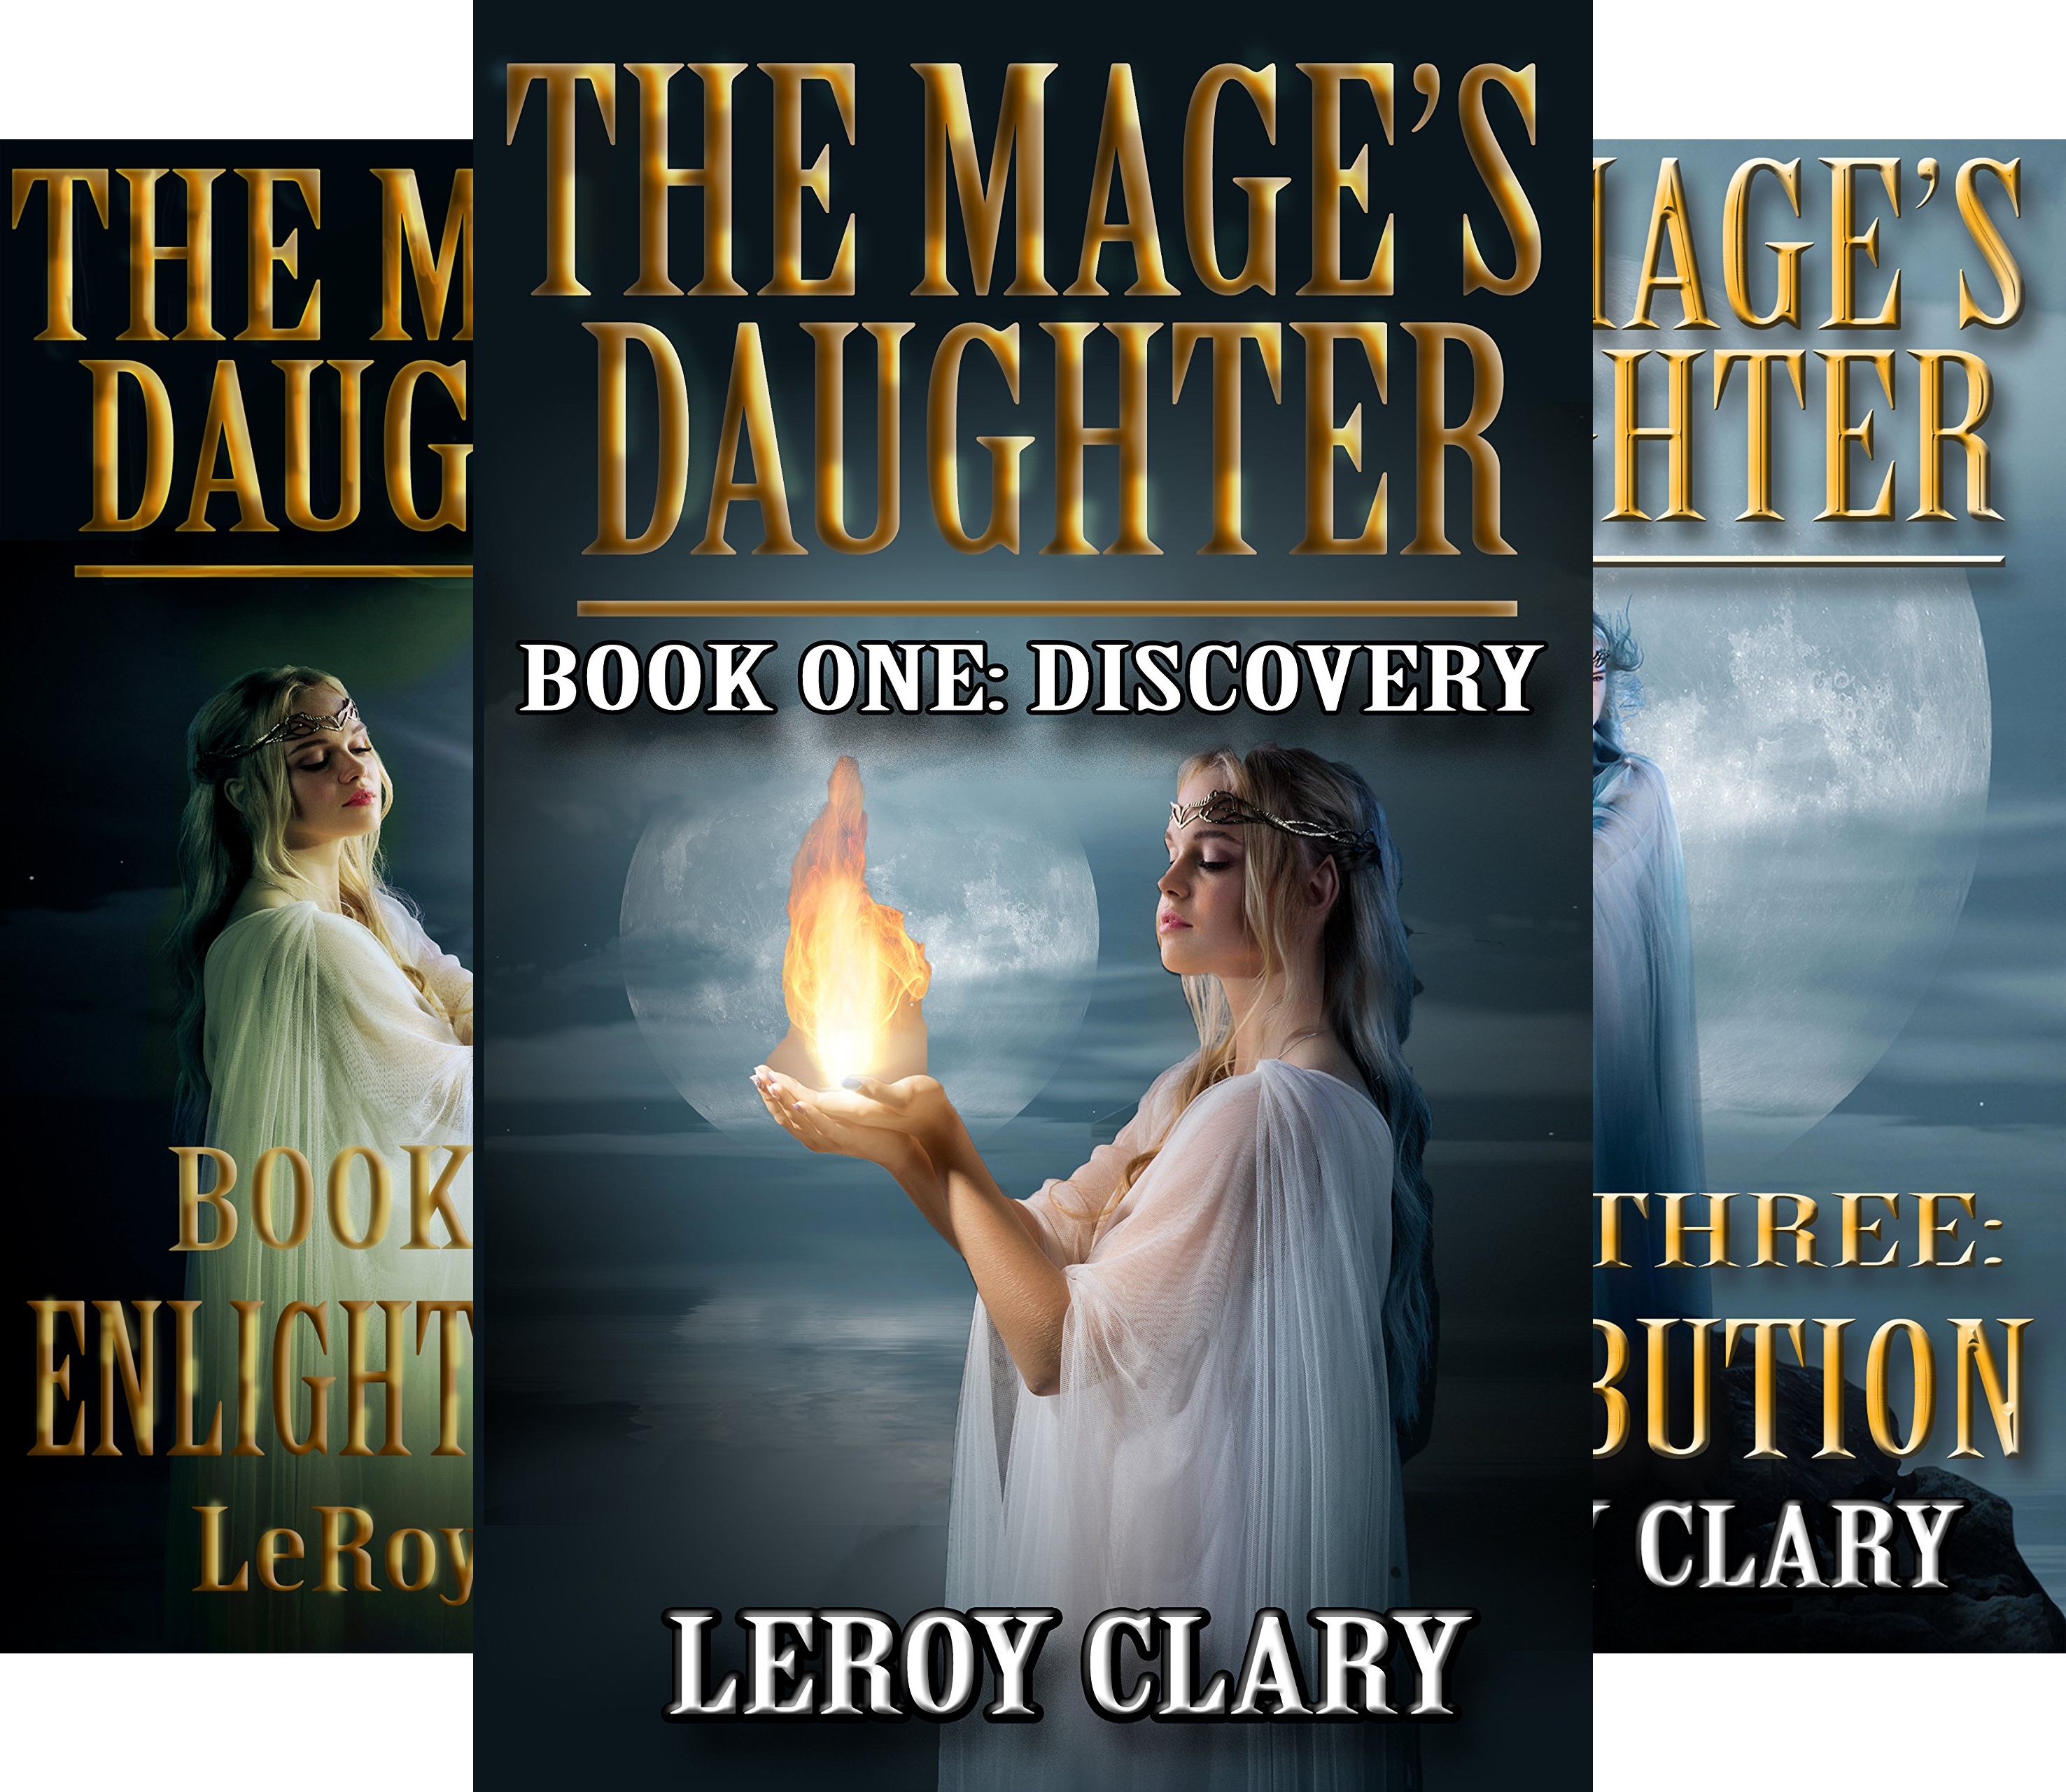 The Mage's Daughter (3 Book Series)